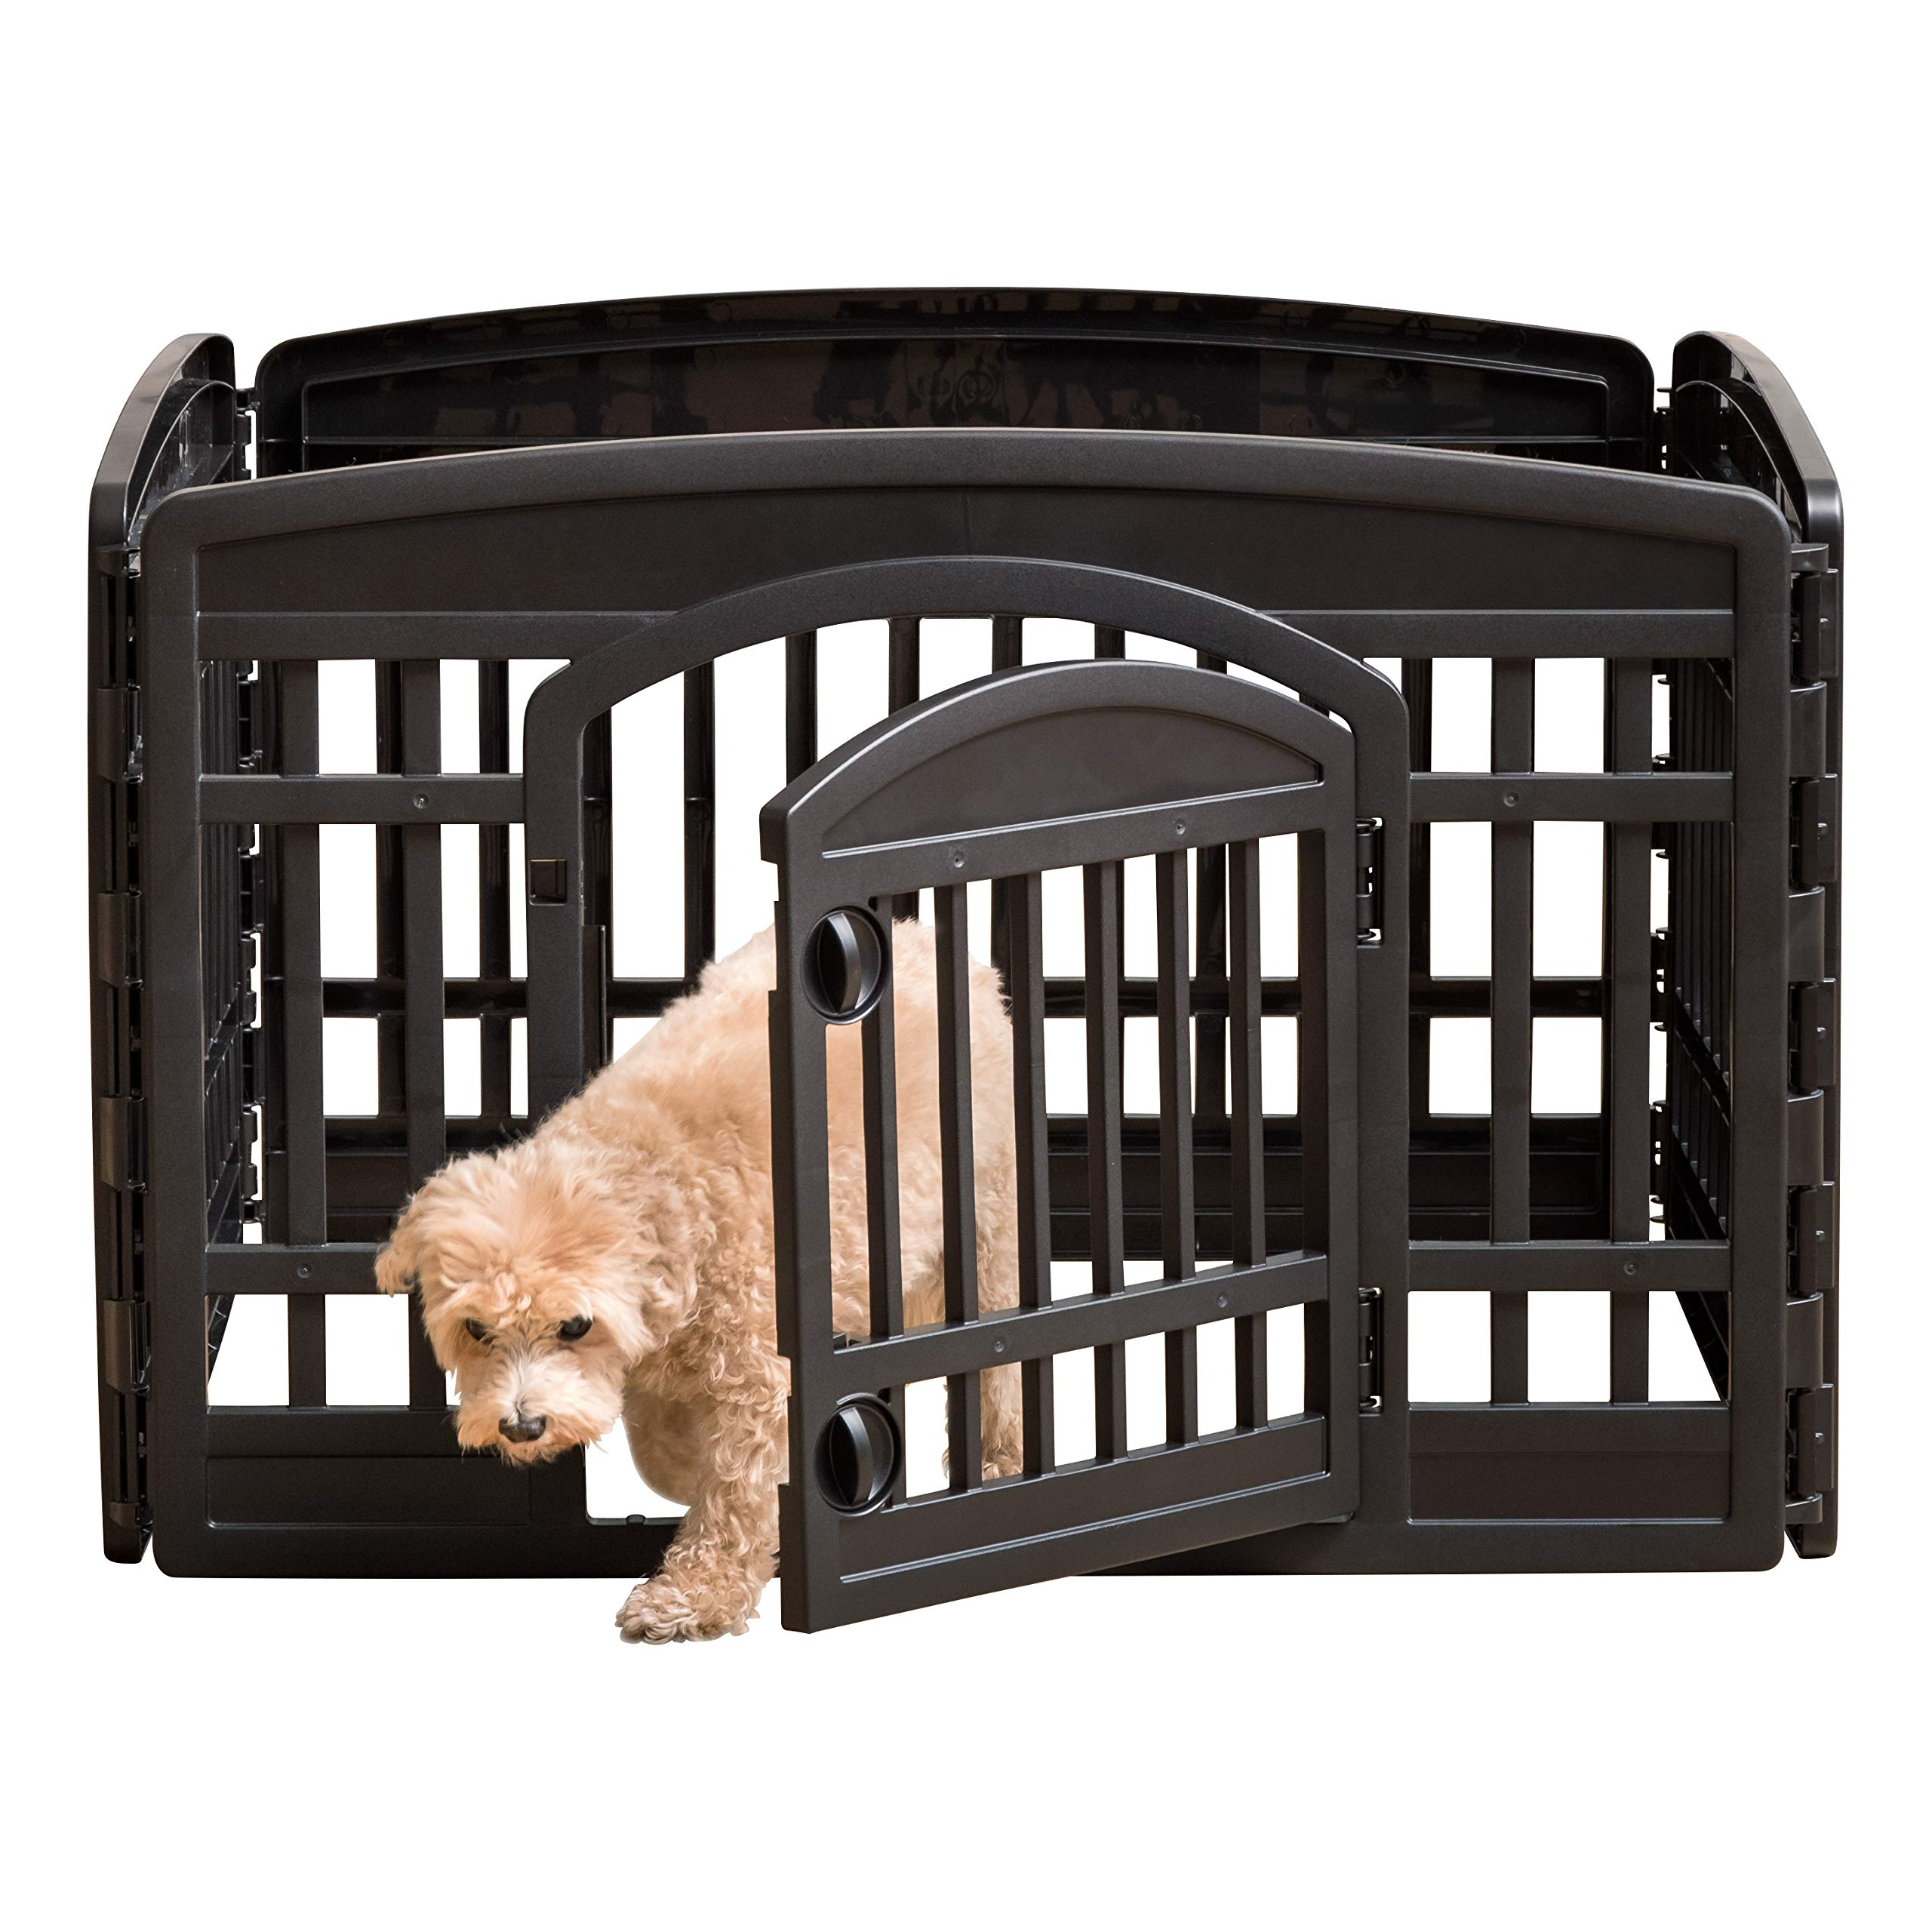 IRIS 24'' 4 Panel Exercise Pet Playpen with Door, Black by IRIS USA, Inc.